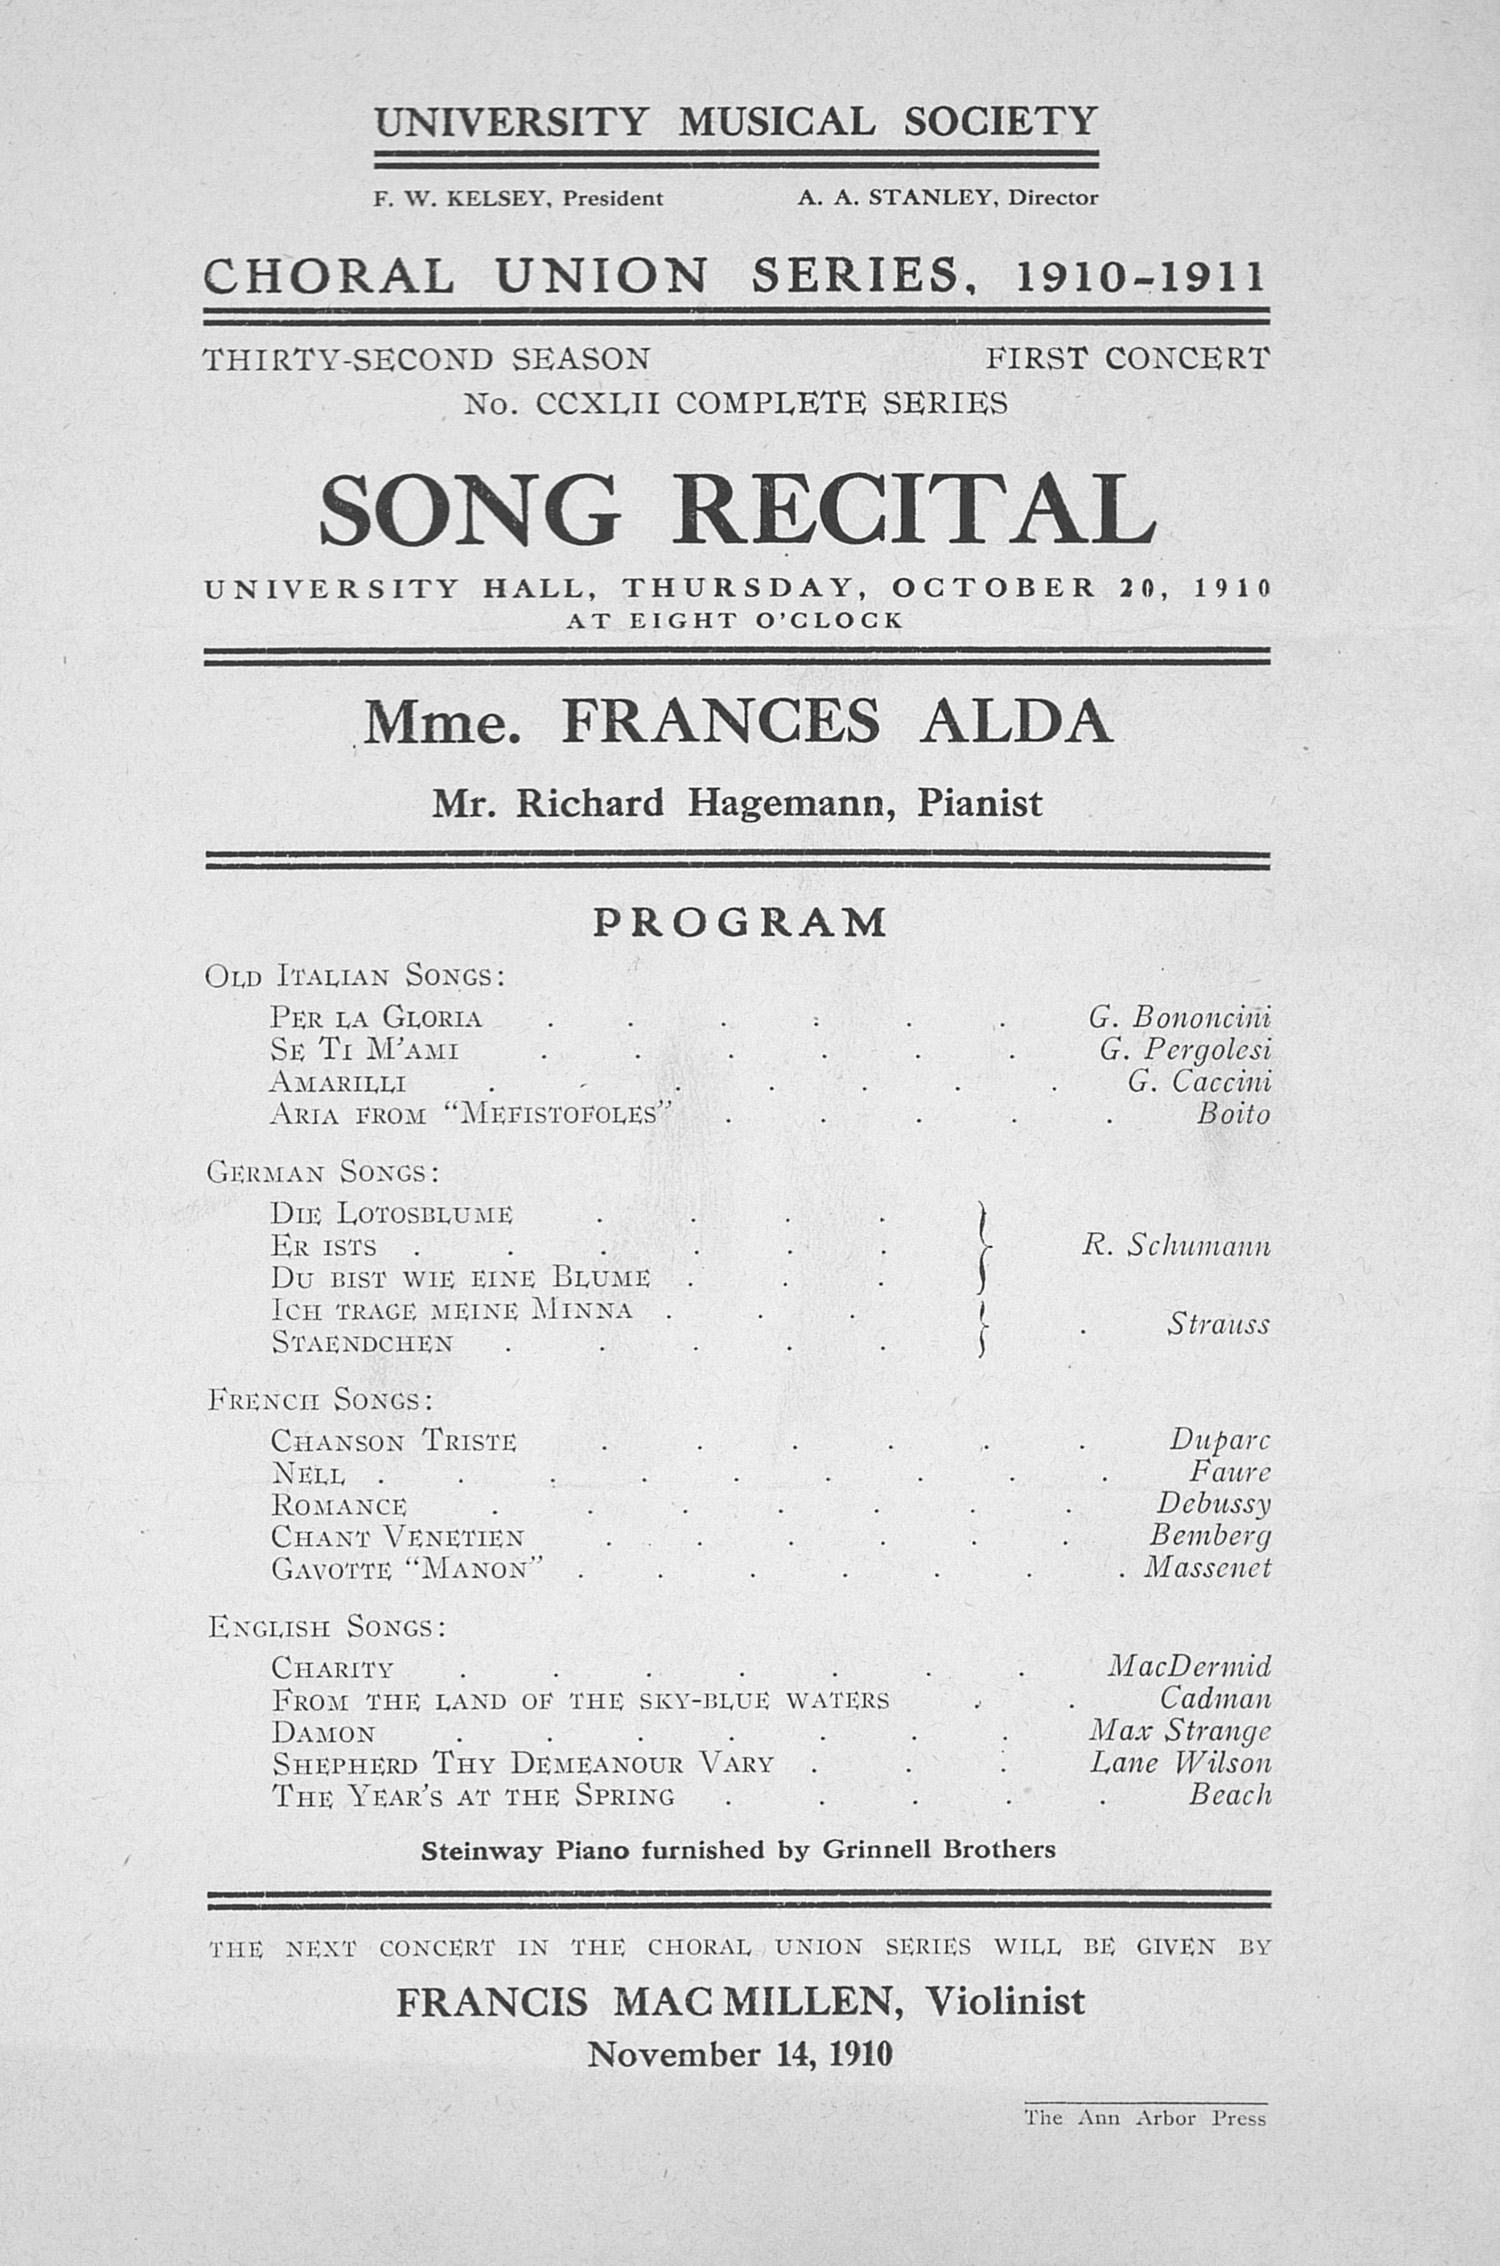 UMS Concert Program, October 20, 1910: Song Recital -- Mme. Frances Alda image